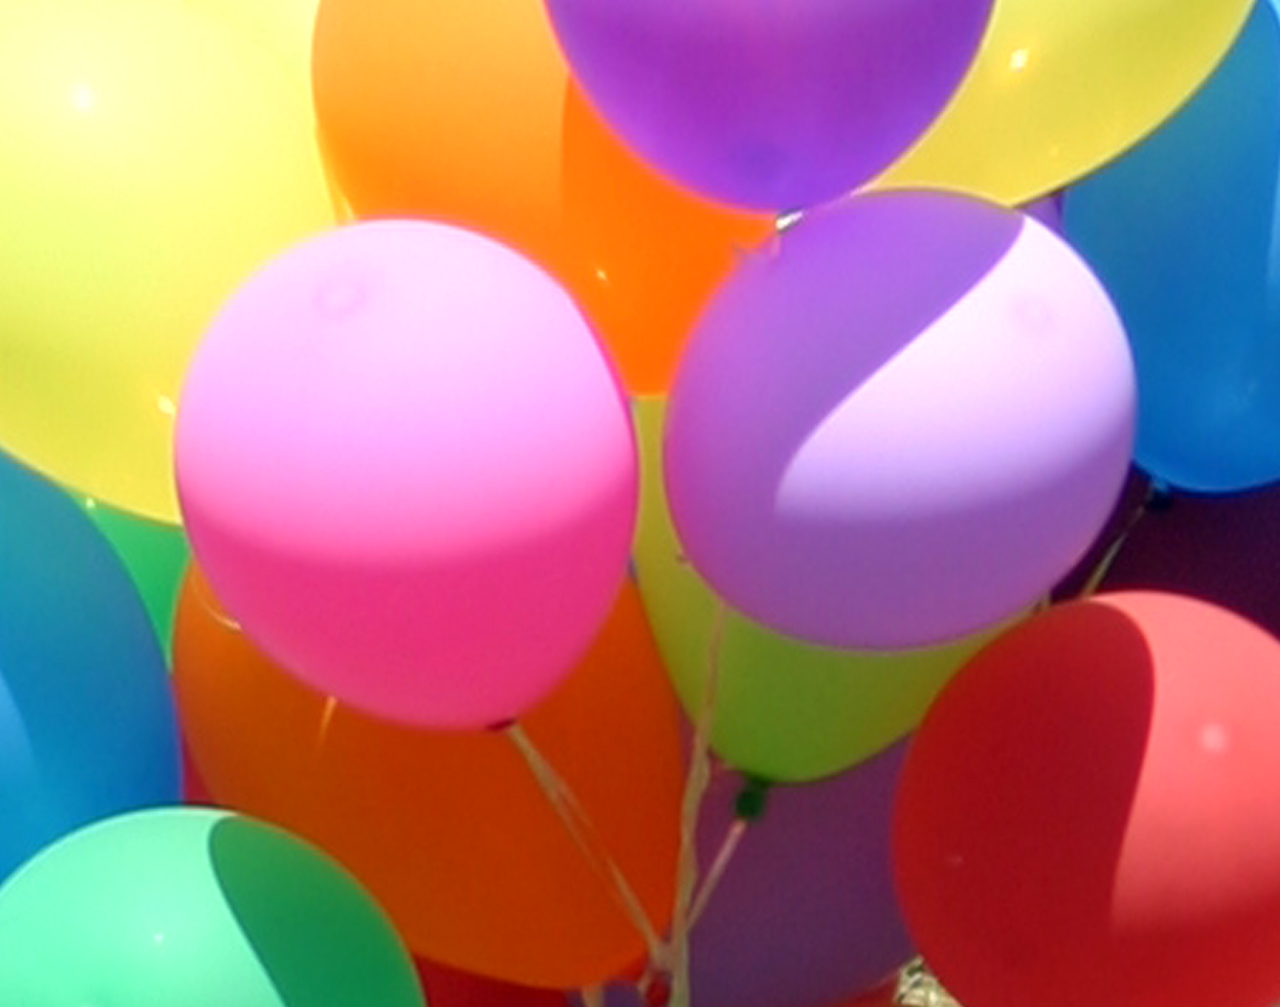 Restaurant Reservation: Picture Of Balloons